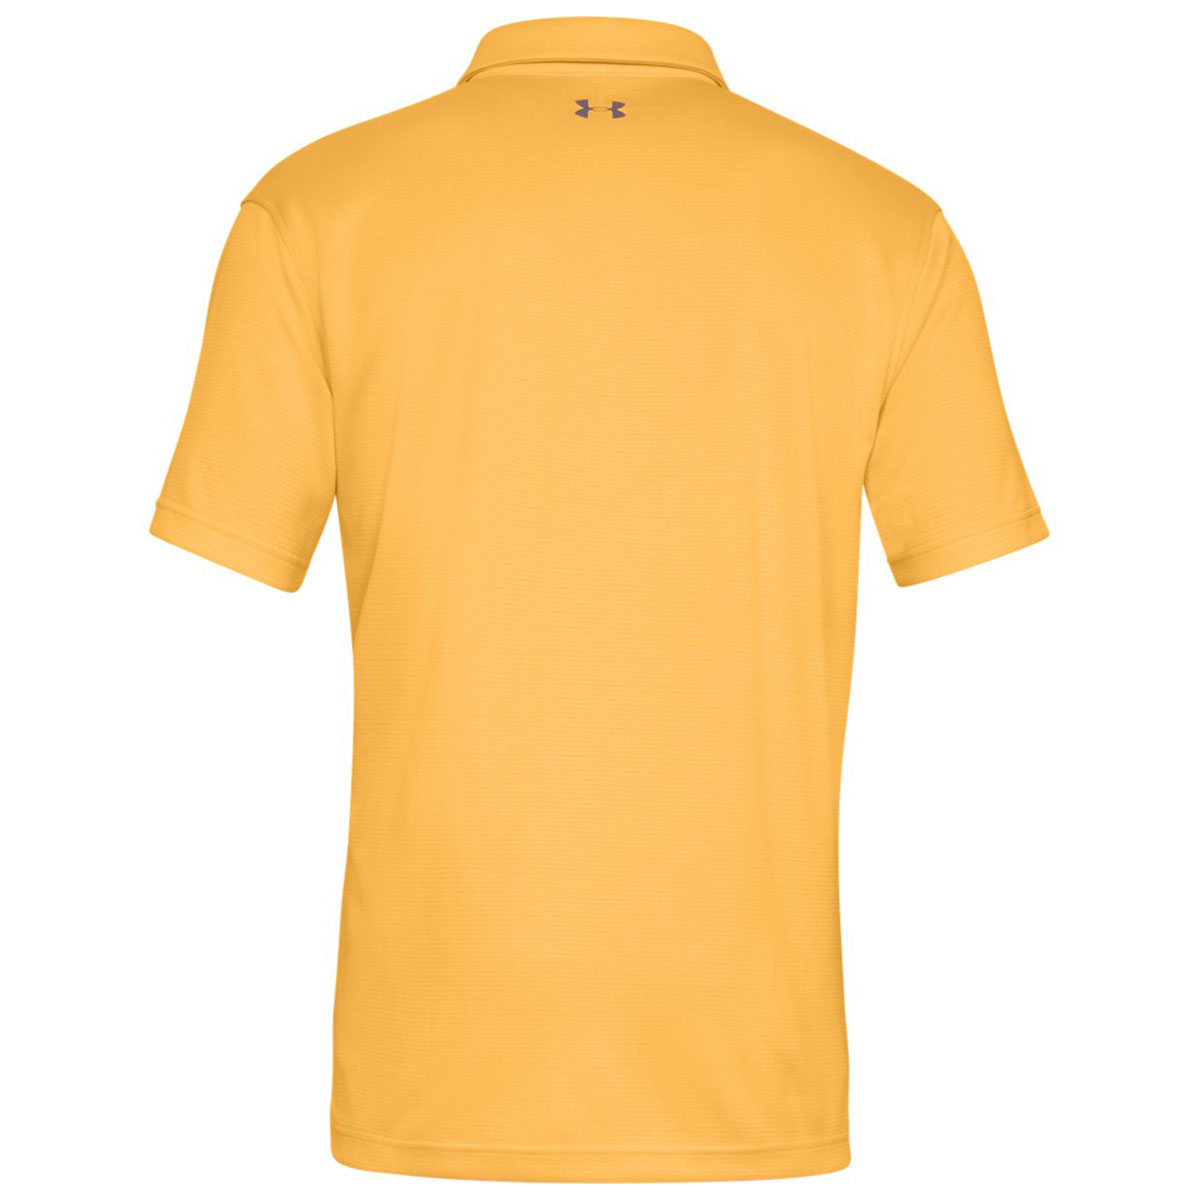 Under-Armour-Mens-Golf-Tech-Wicking-Textured-Soft-Light-Polo-Shirt thumbnail 47